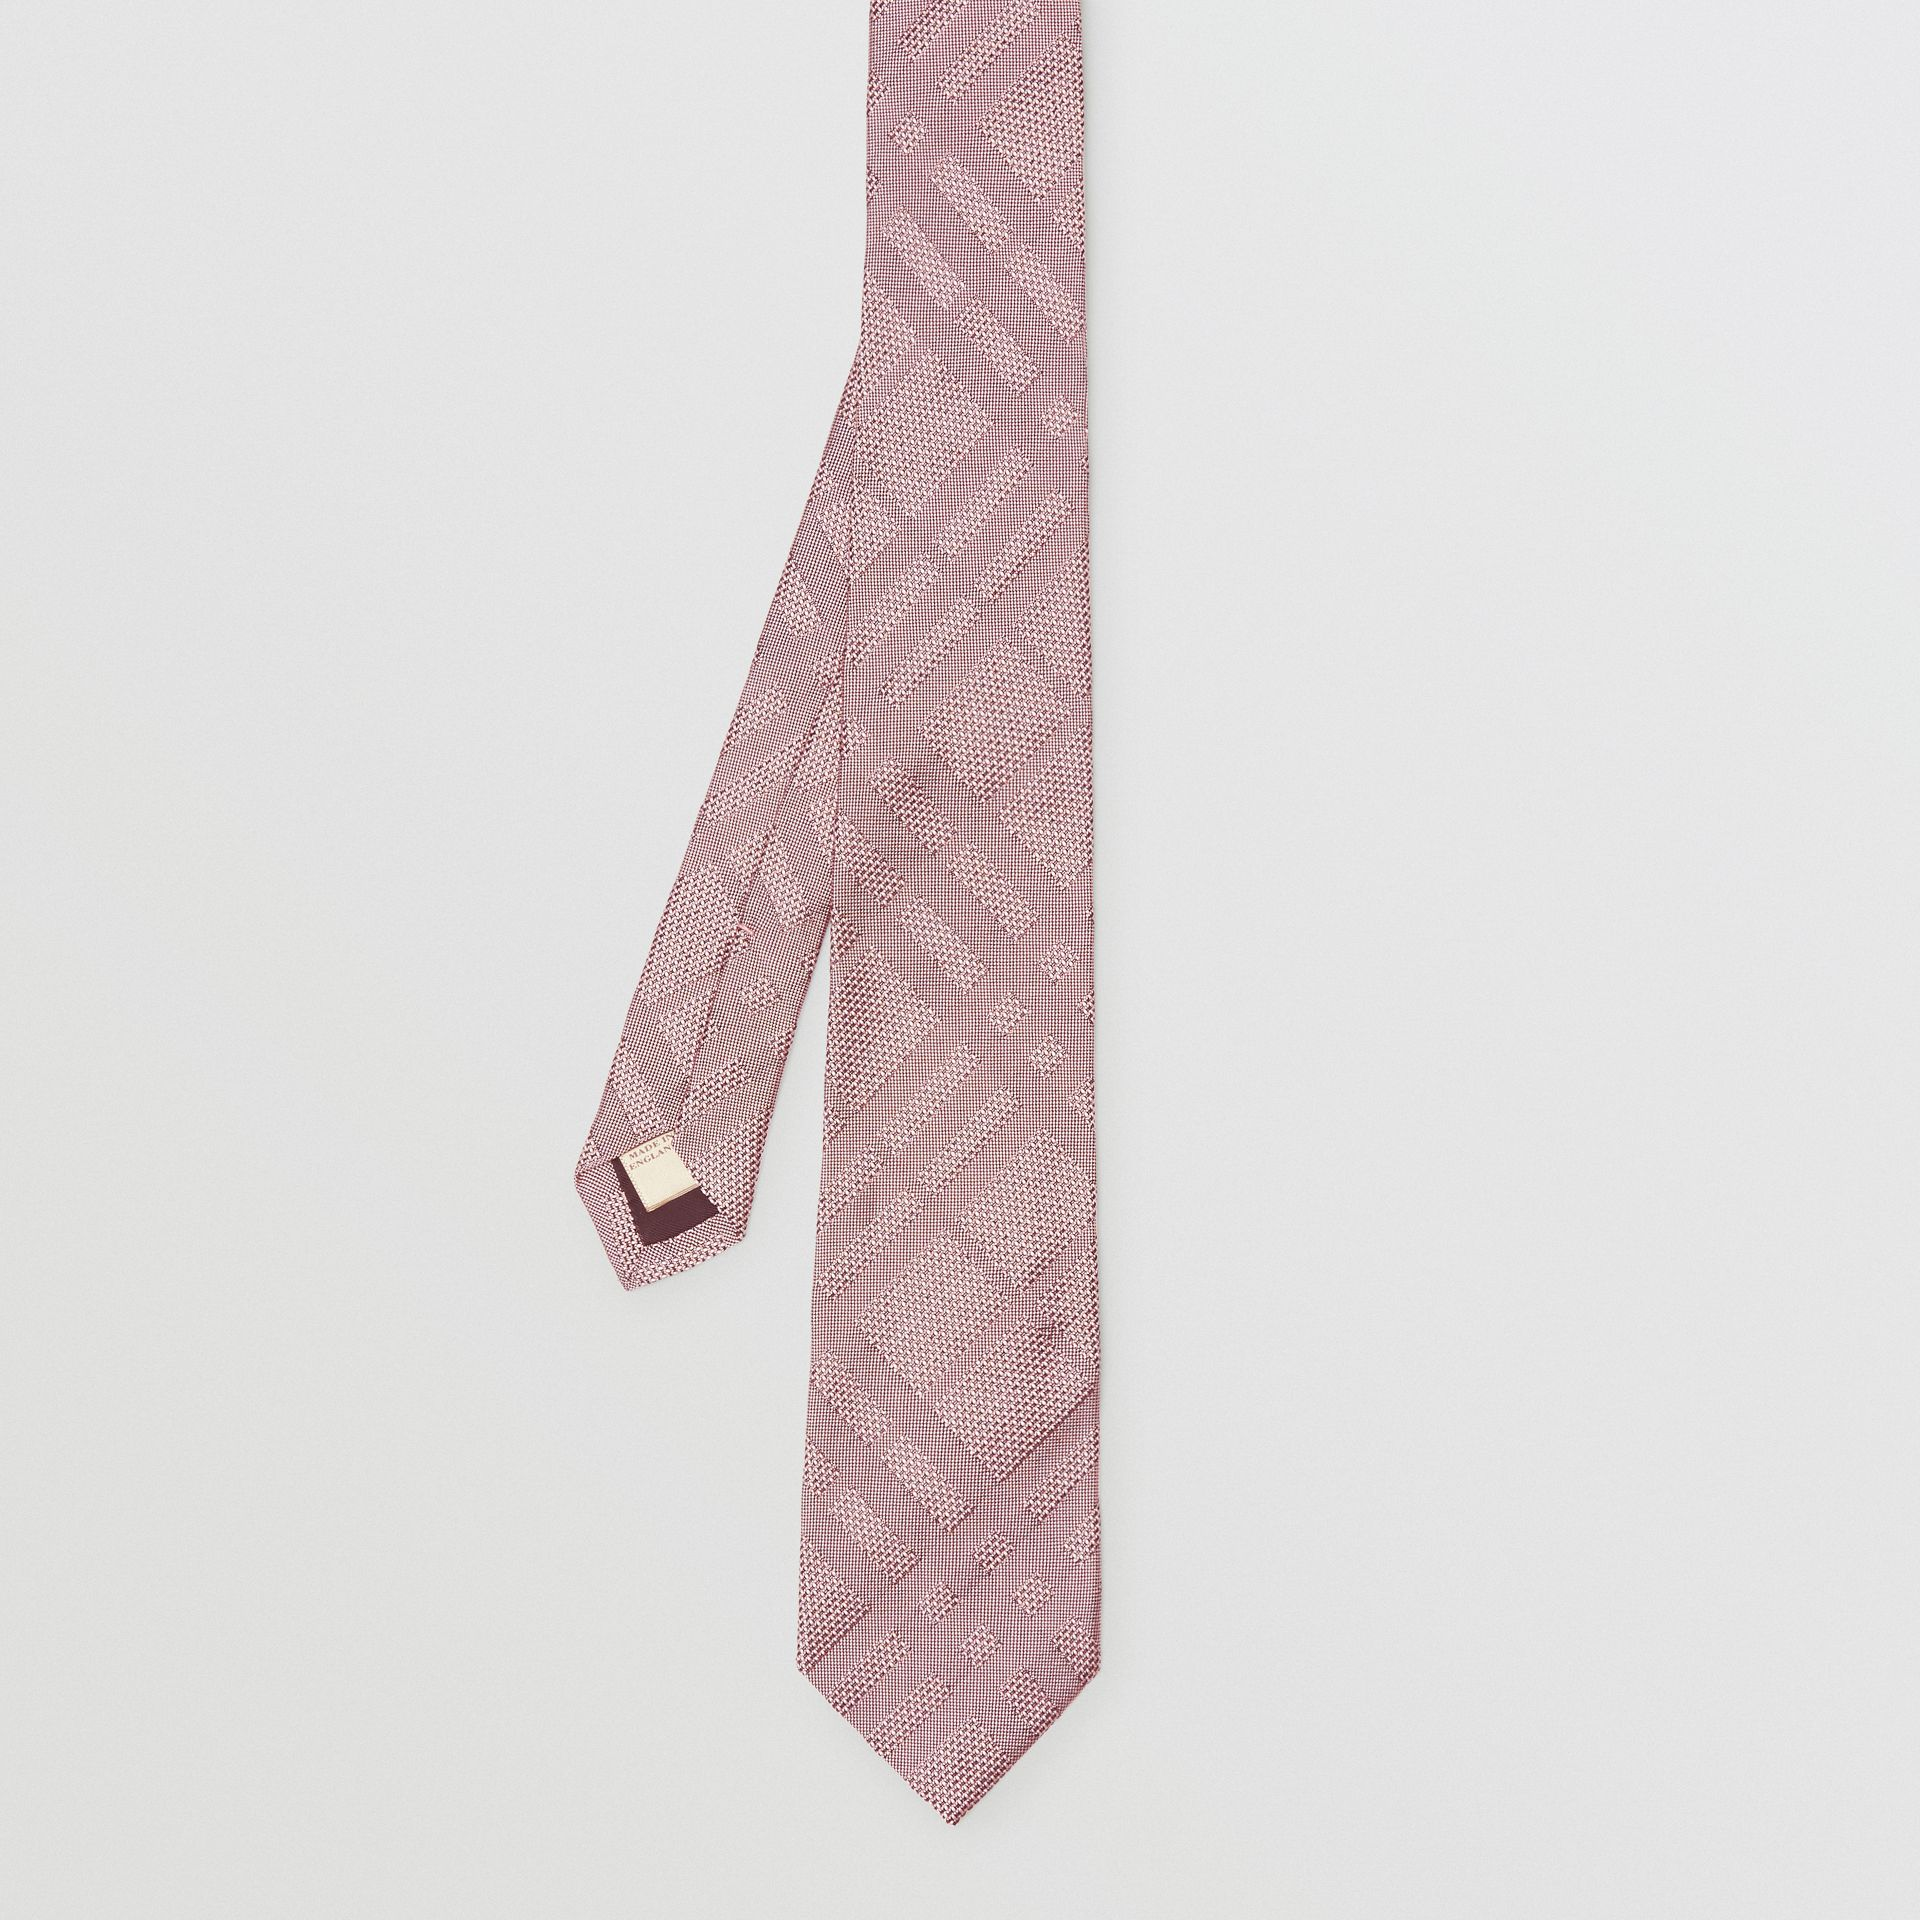 Modern Cut Check Silk Jacquard Tie in Alabaster Pink - Men | Burberry Canada - gallery image 4